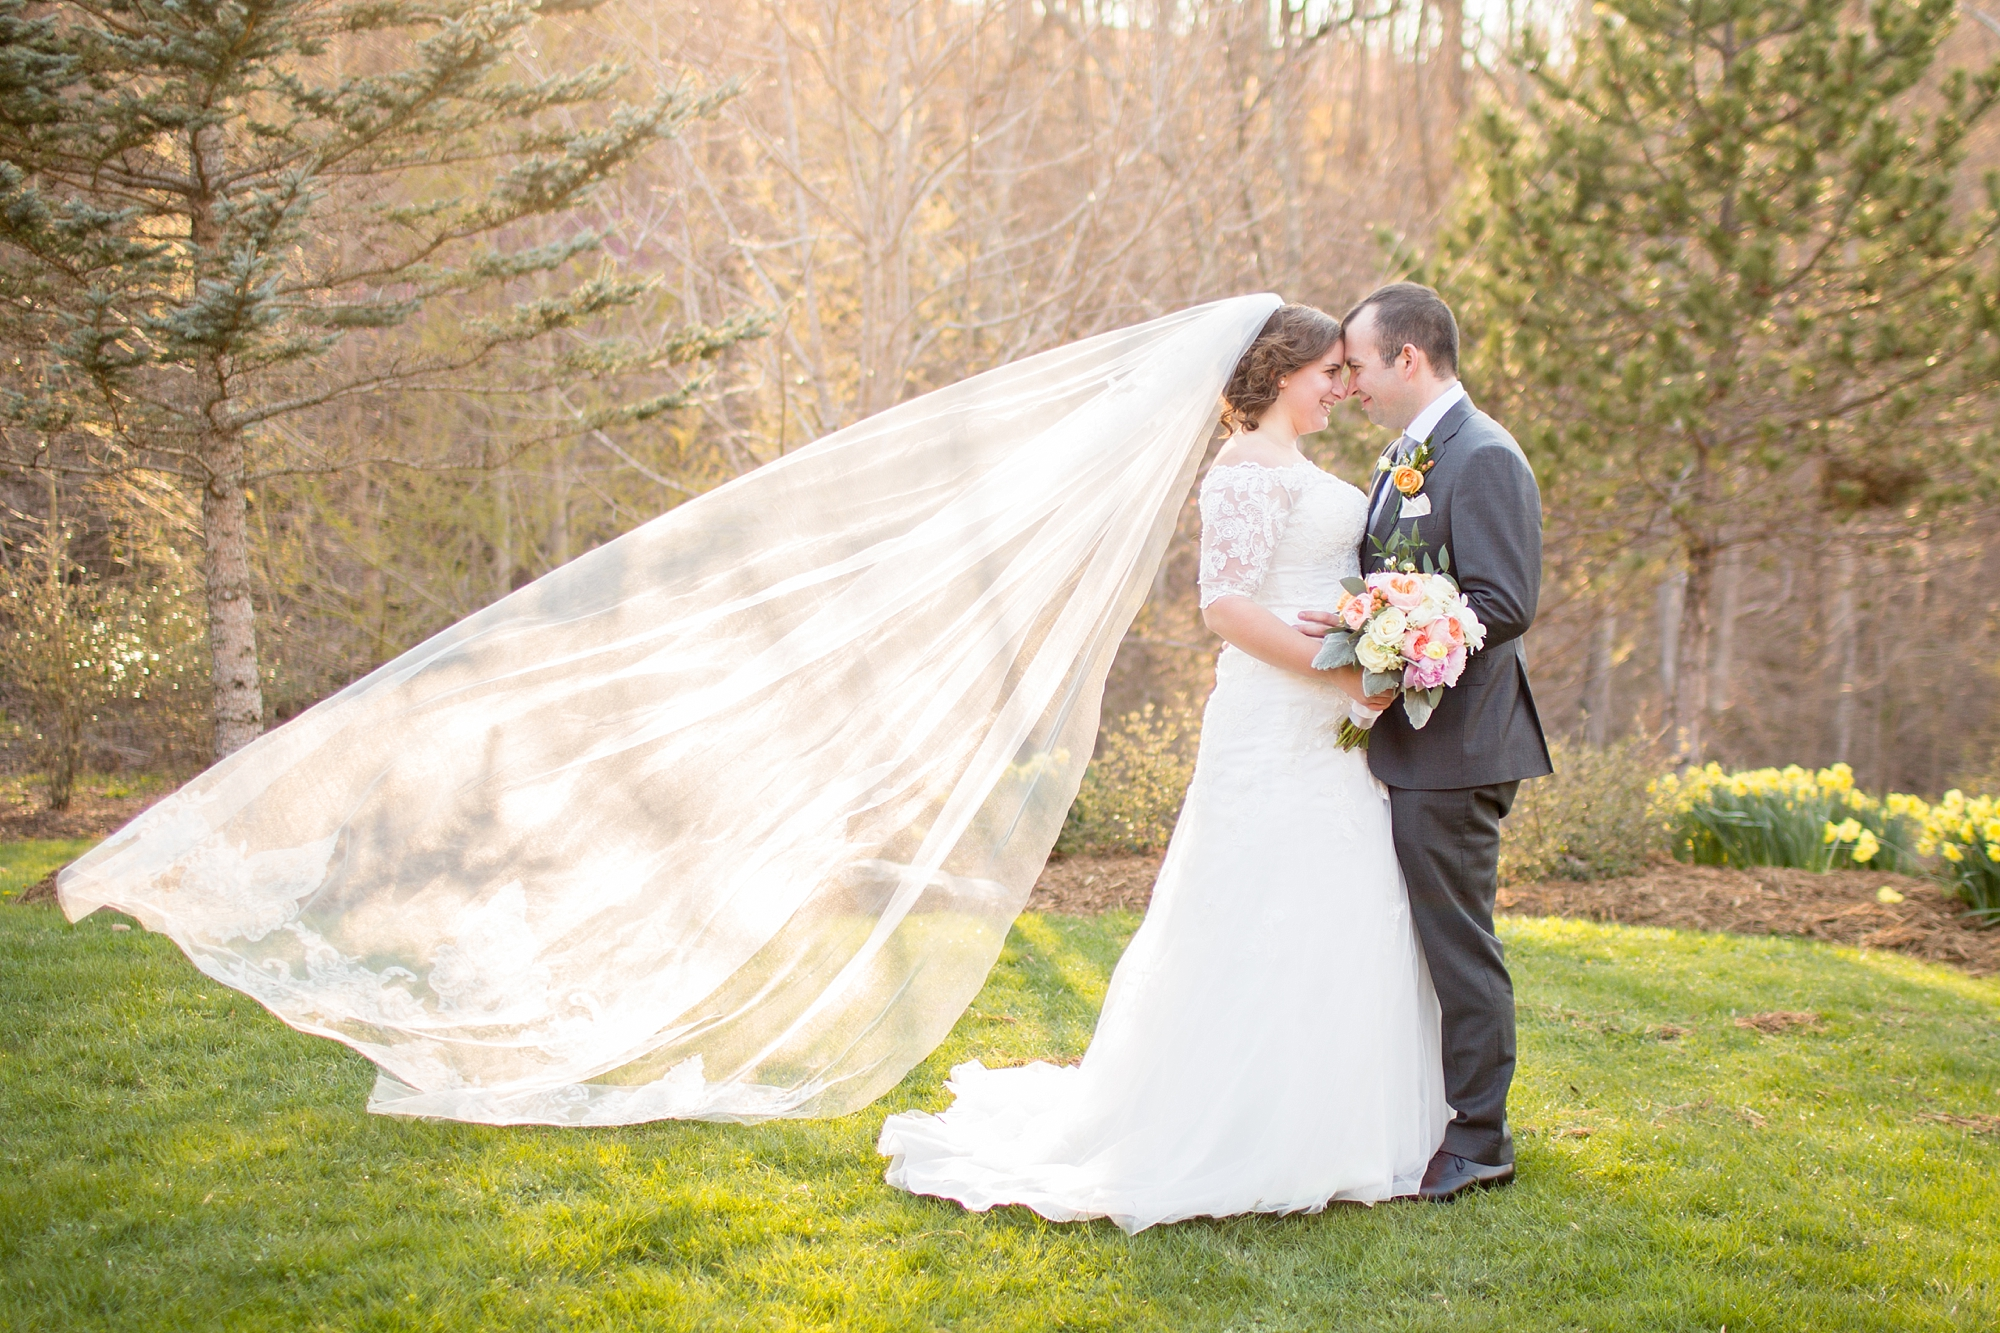 That veil is gorgeous!